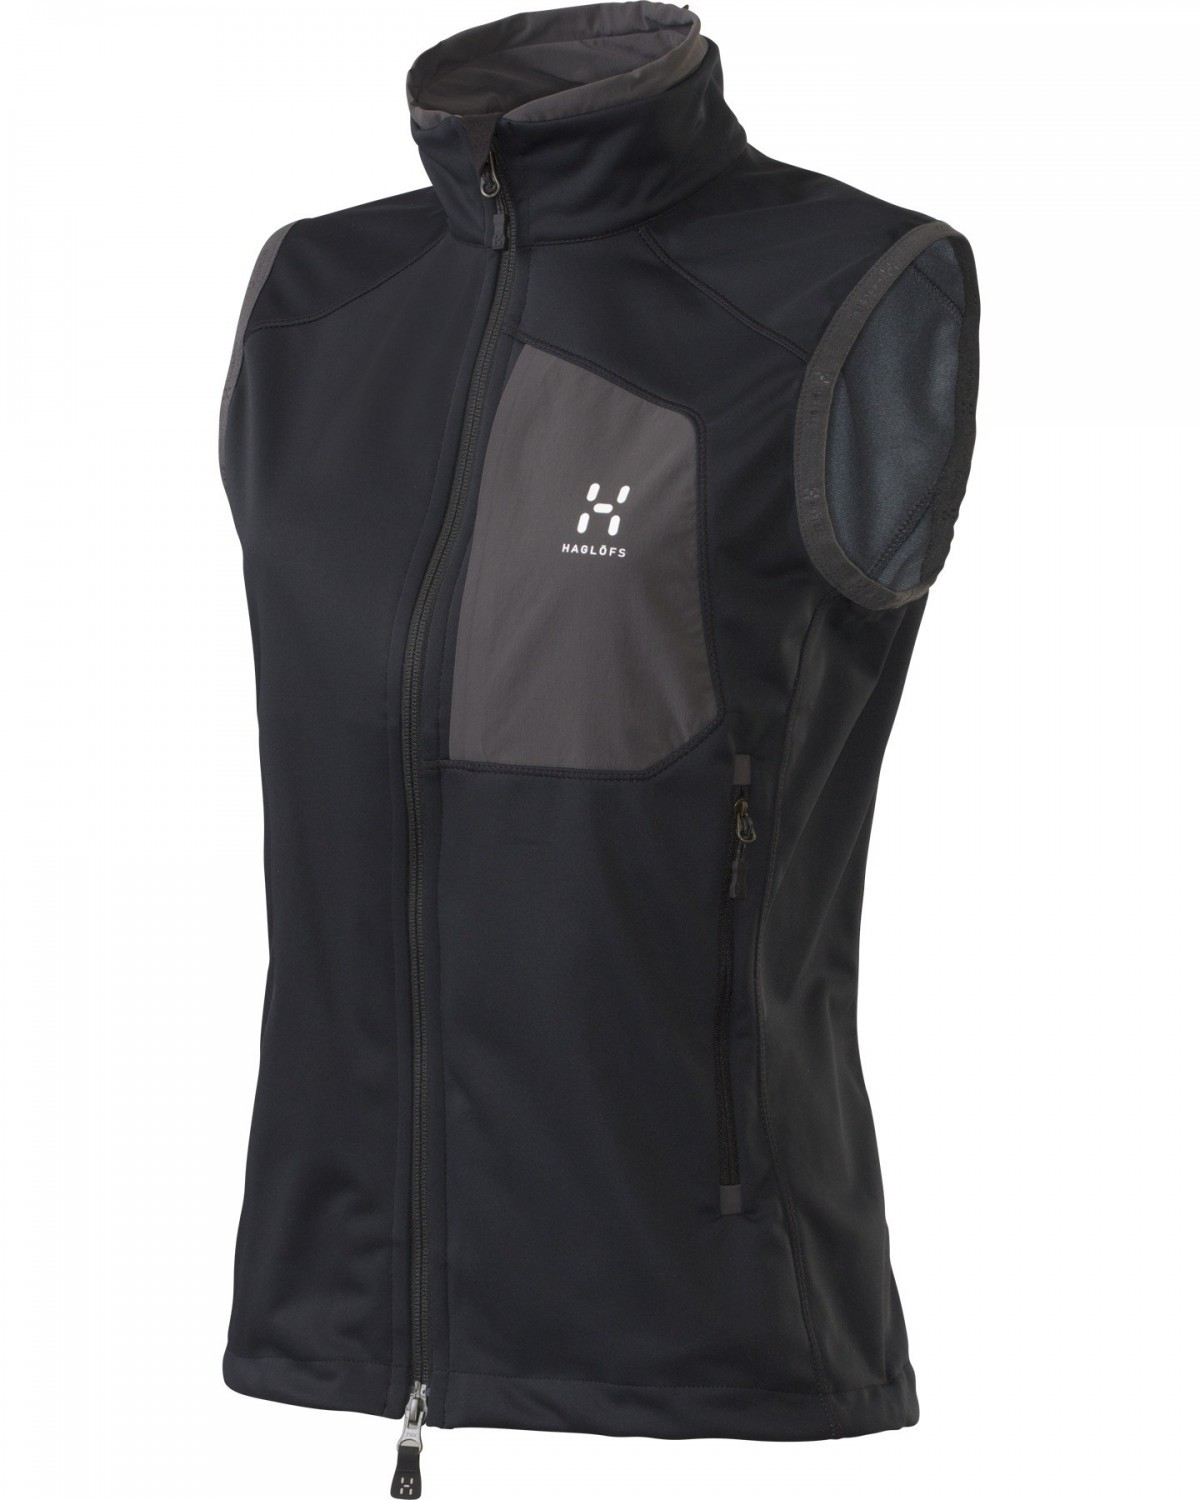 Haglofs Ulta Vest True Black-30